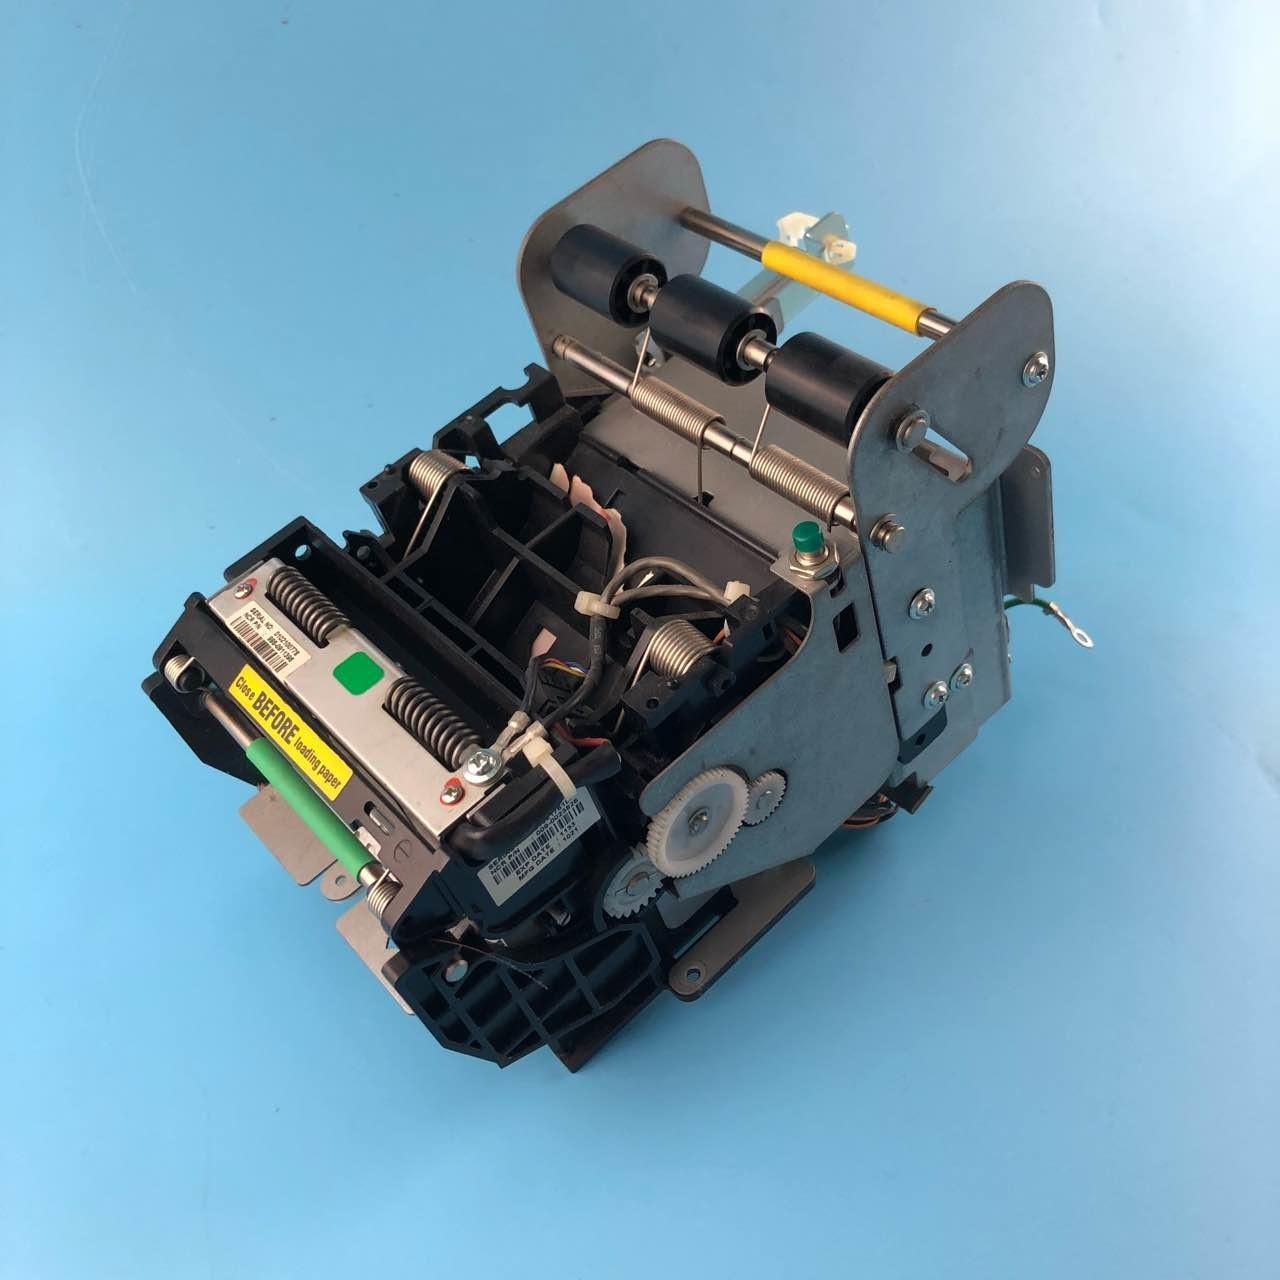 NCR Atm Machine Parts , Ncr Spare Parts 66XX Thermal Receipt Printer Engine 009-0023826 Manufactures